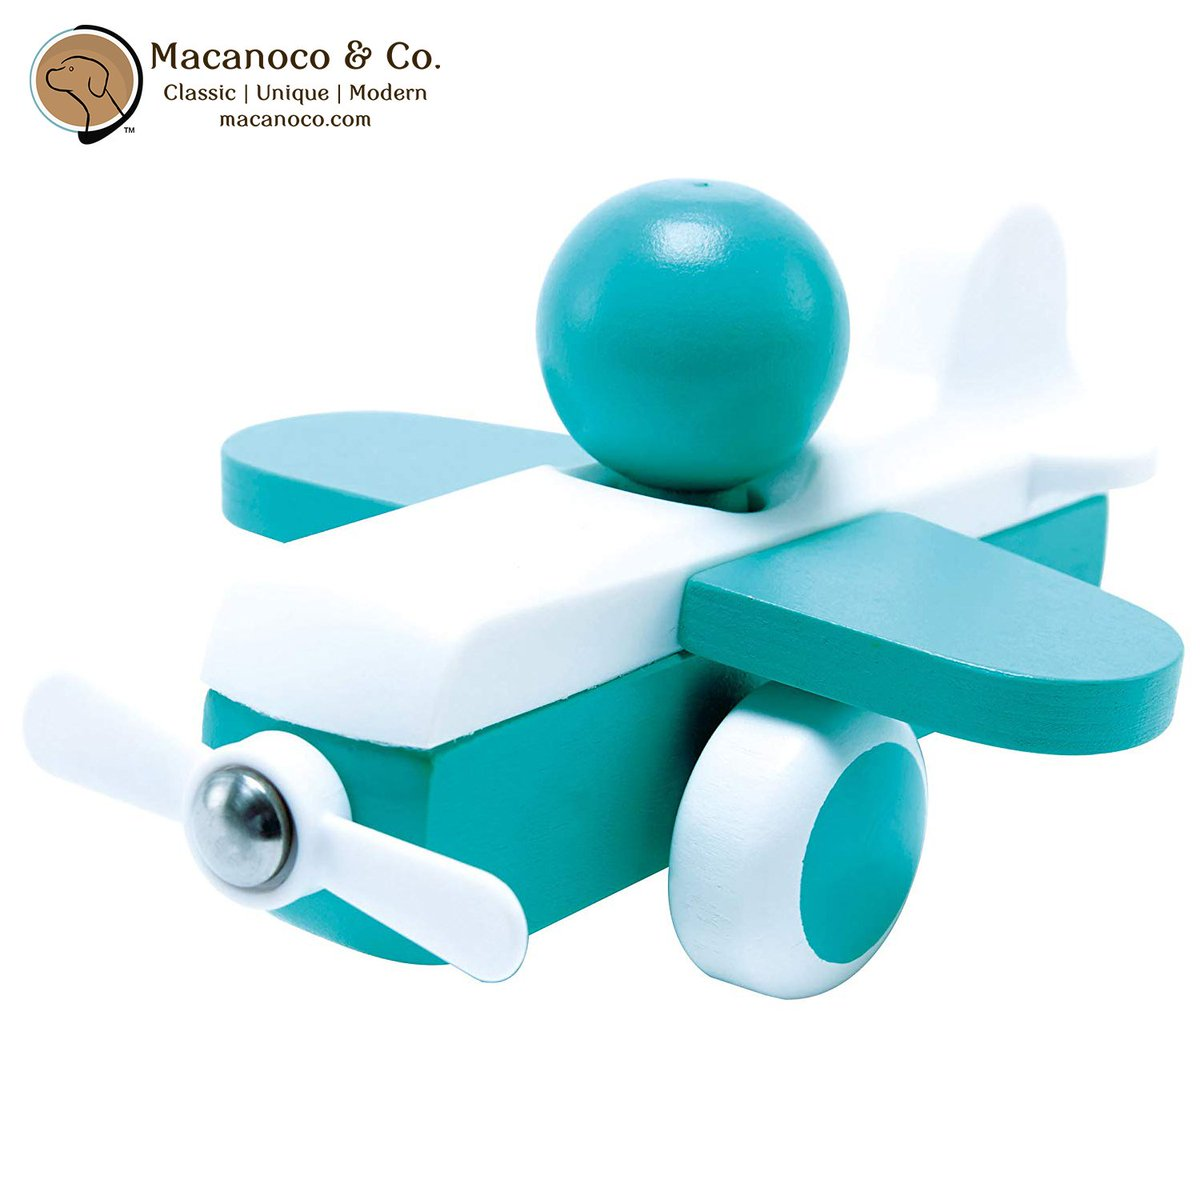 test Twitter Media - Sky Flyer, Aqua Airplane Wooden Toy - https://t.co/OQgj61RPyC  #MacanocoAndCo #Macanoco #Boutique #Miami #Fashion #ToyStore #ChildrensBoutique https://t.co/LBq3TpqSpj